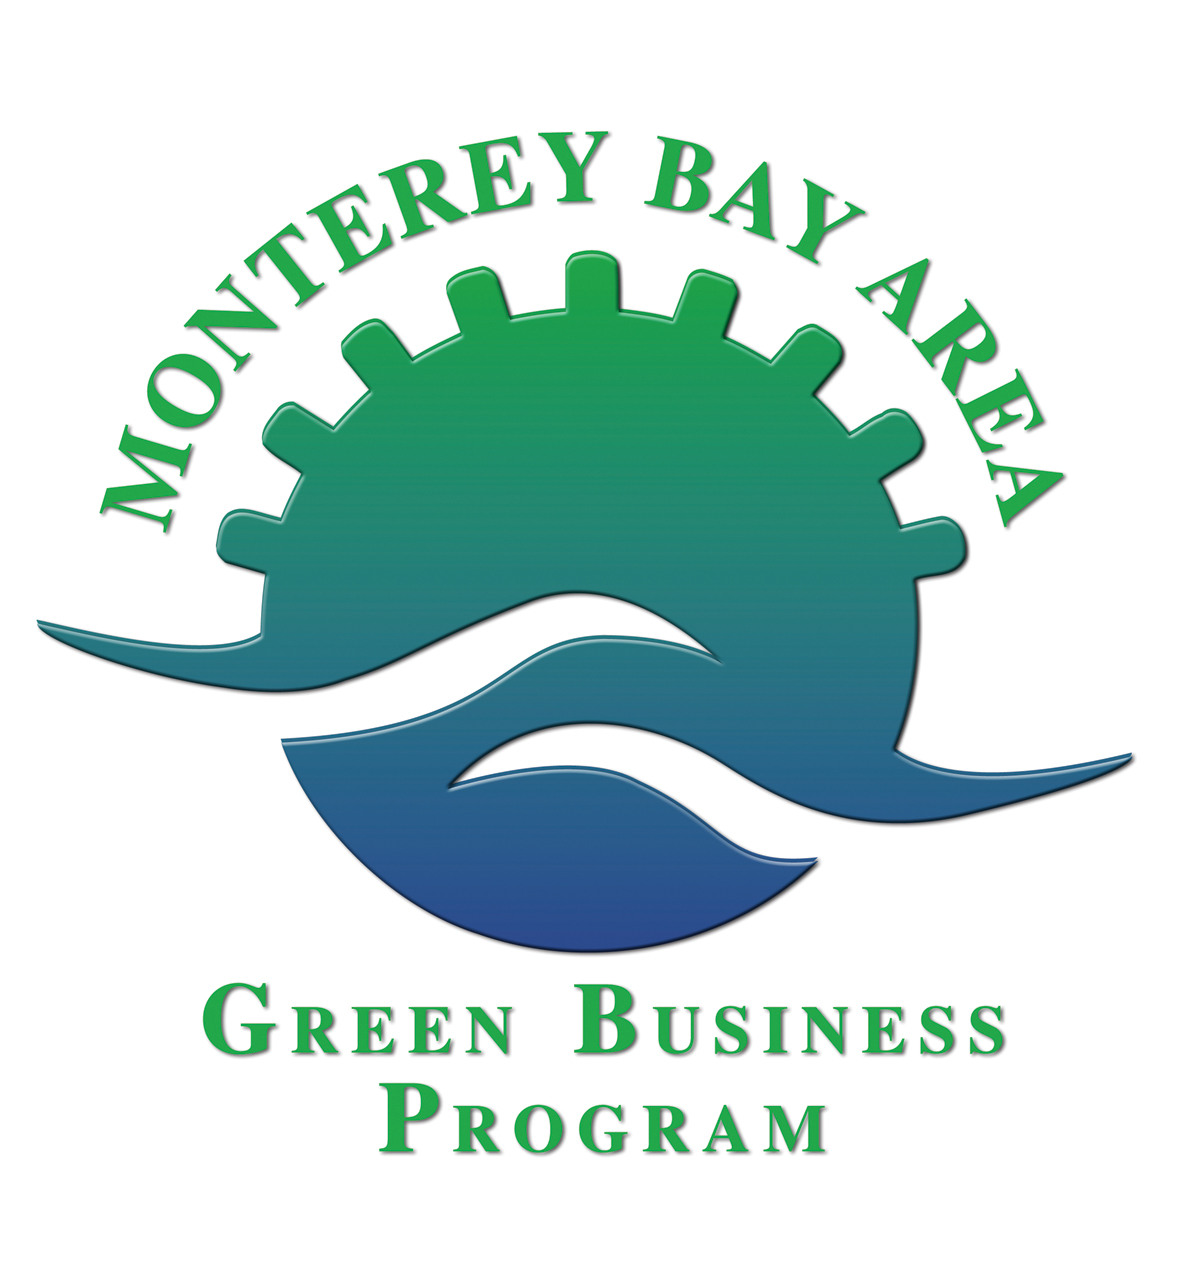 MB Area Green Business